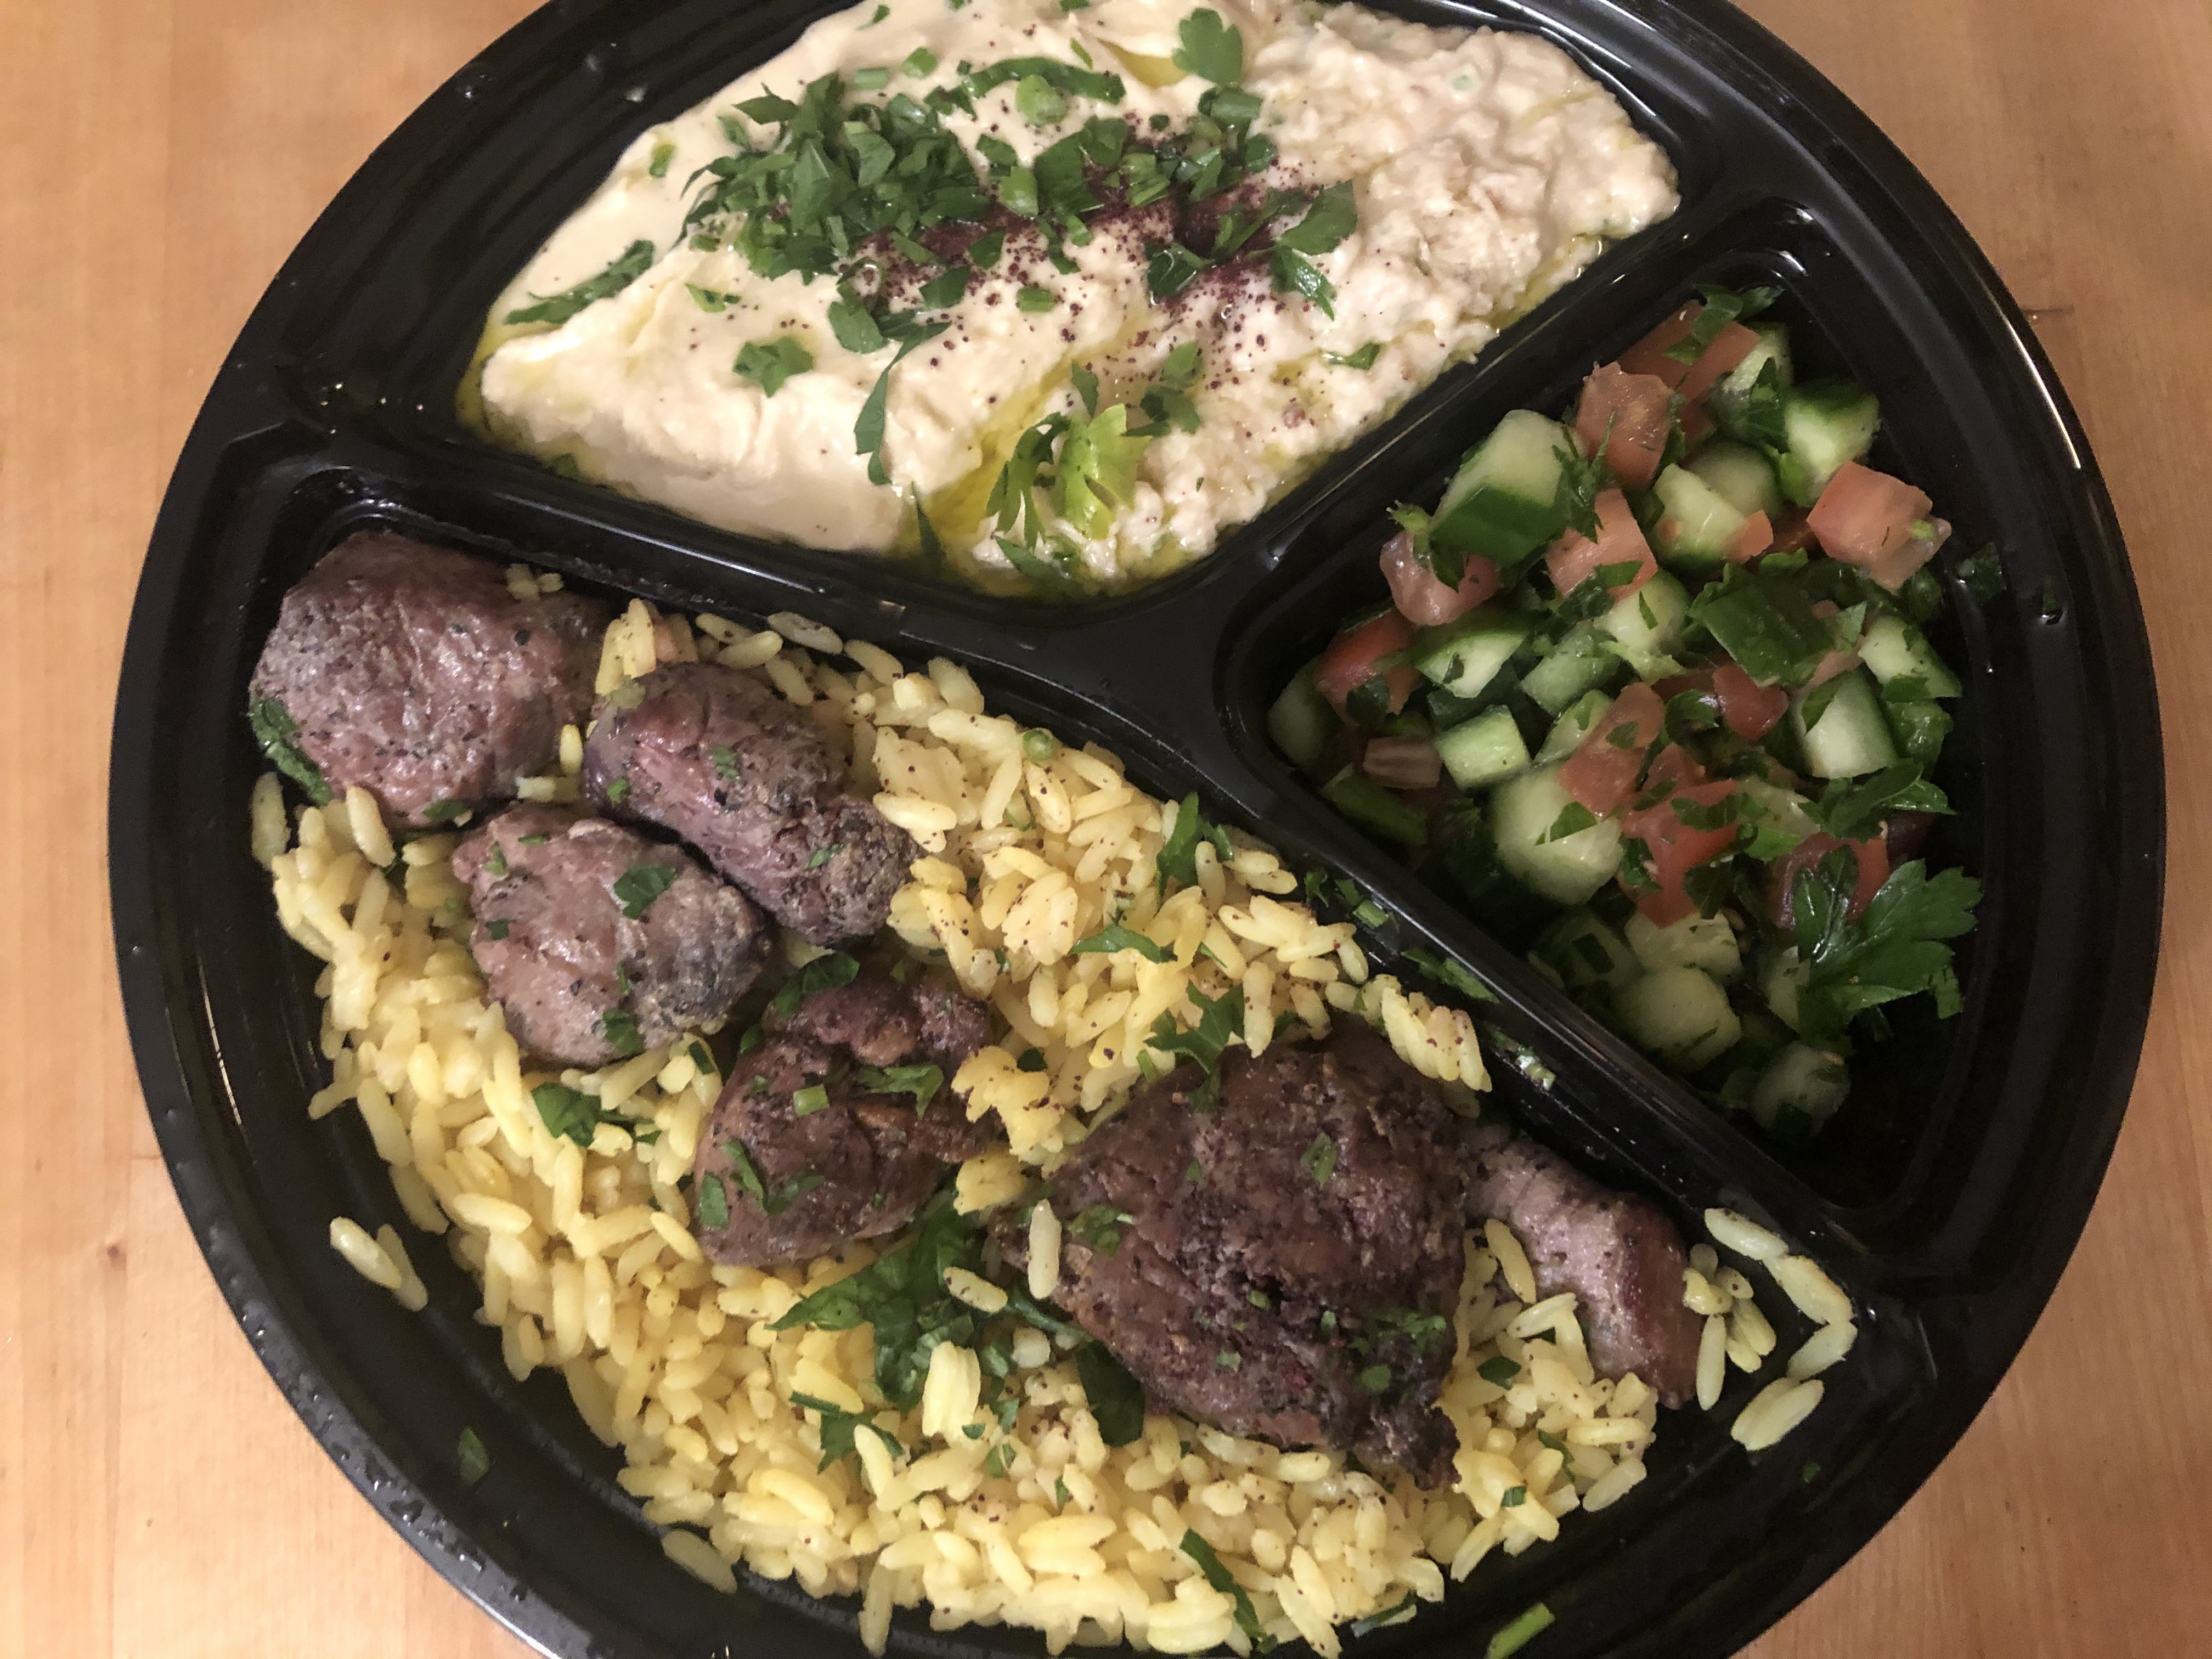 An overhead photograph of a takeout container with hummus, cucumber salad, rice, and grilled meat